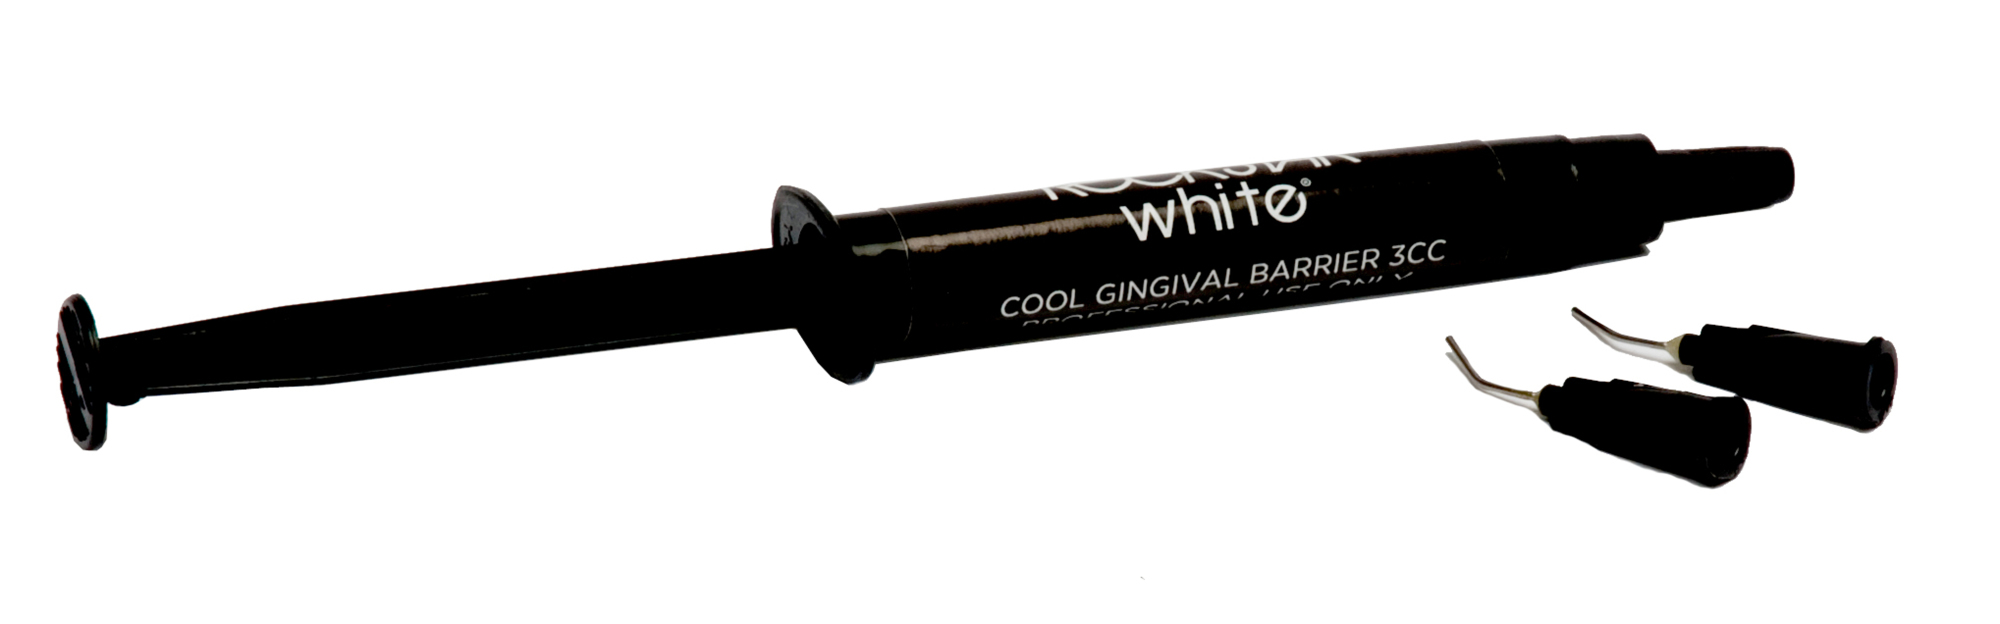 pic-of-gingival-barrier.jpg